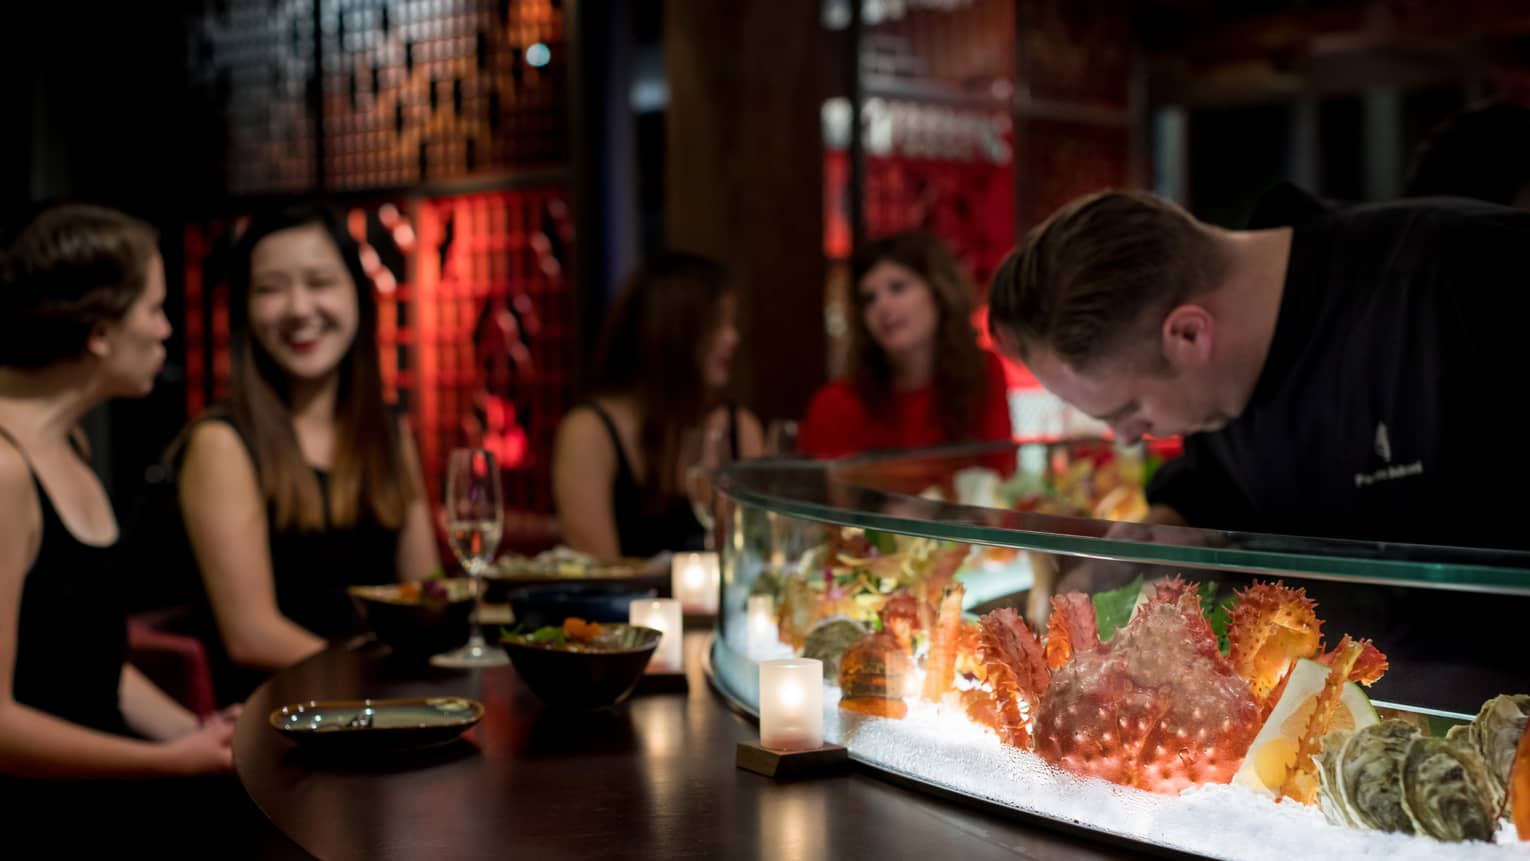 Chef leans down behind round glass seafood bar where smiling women sit at bar